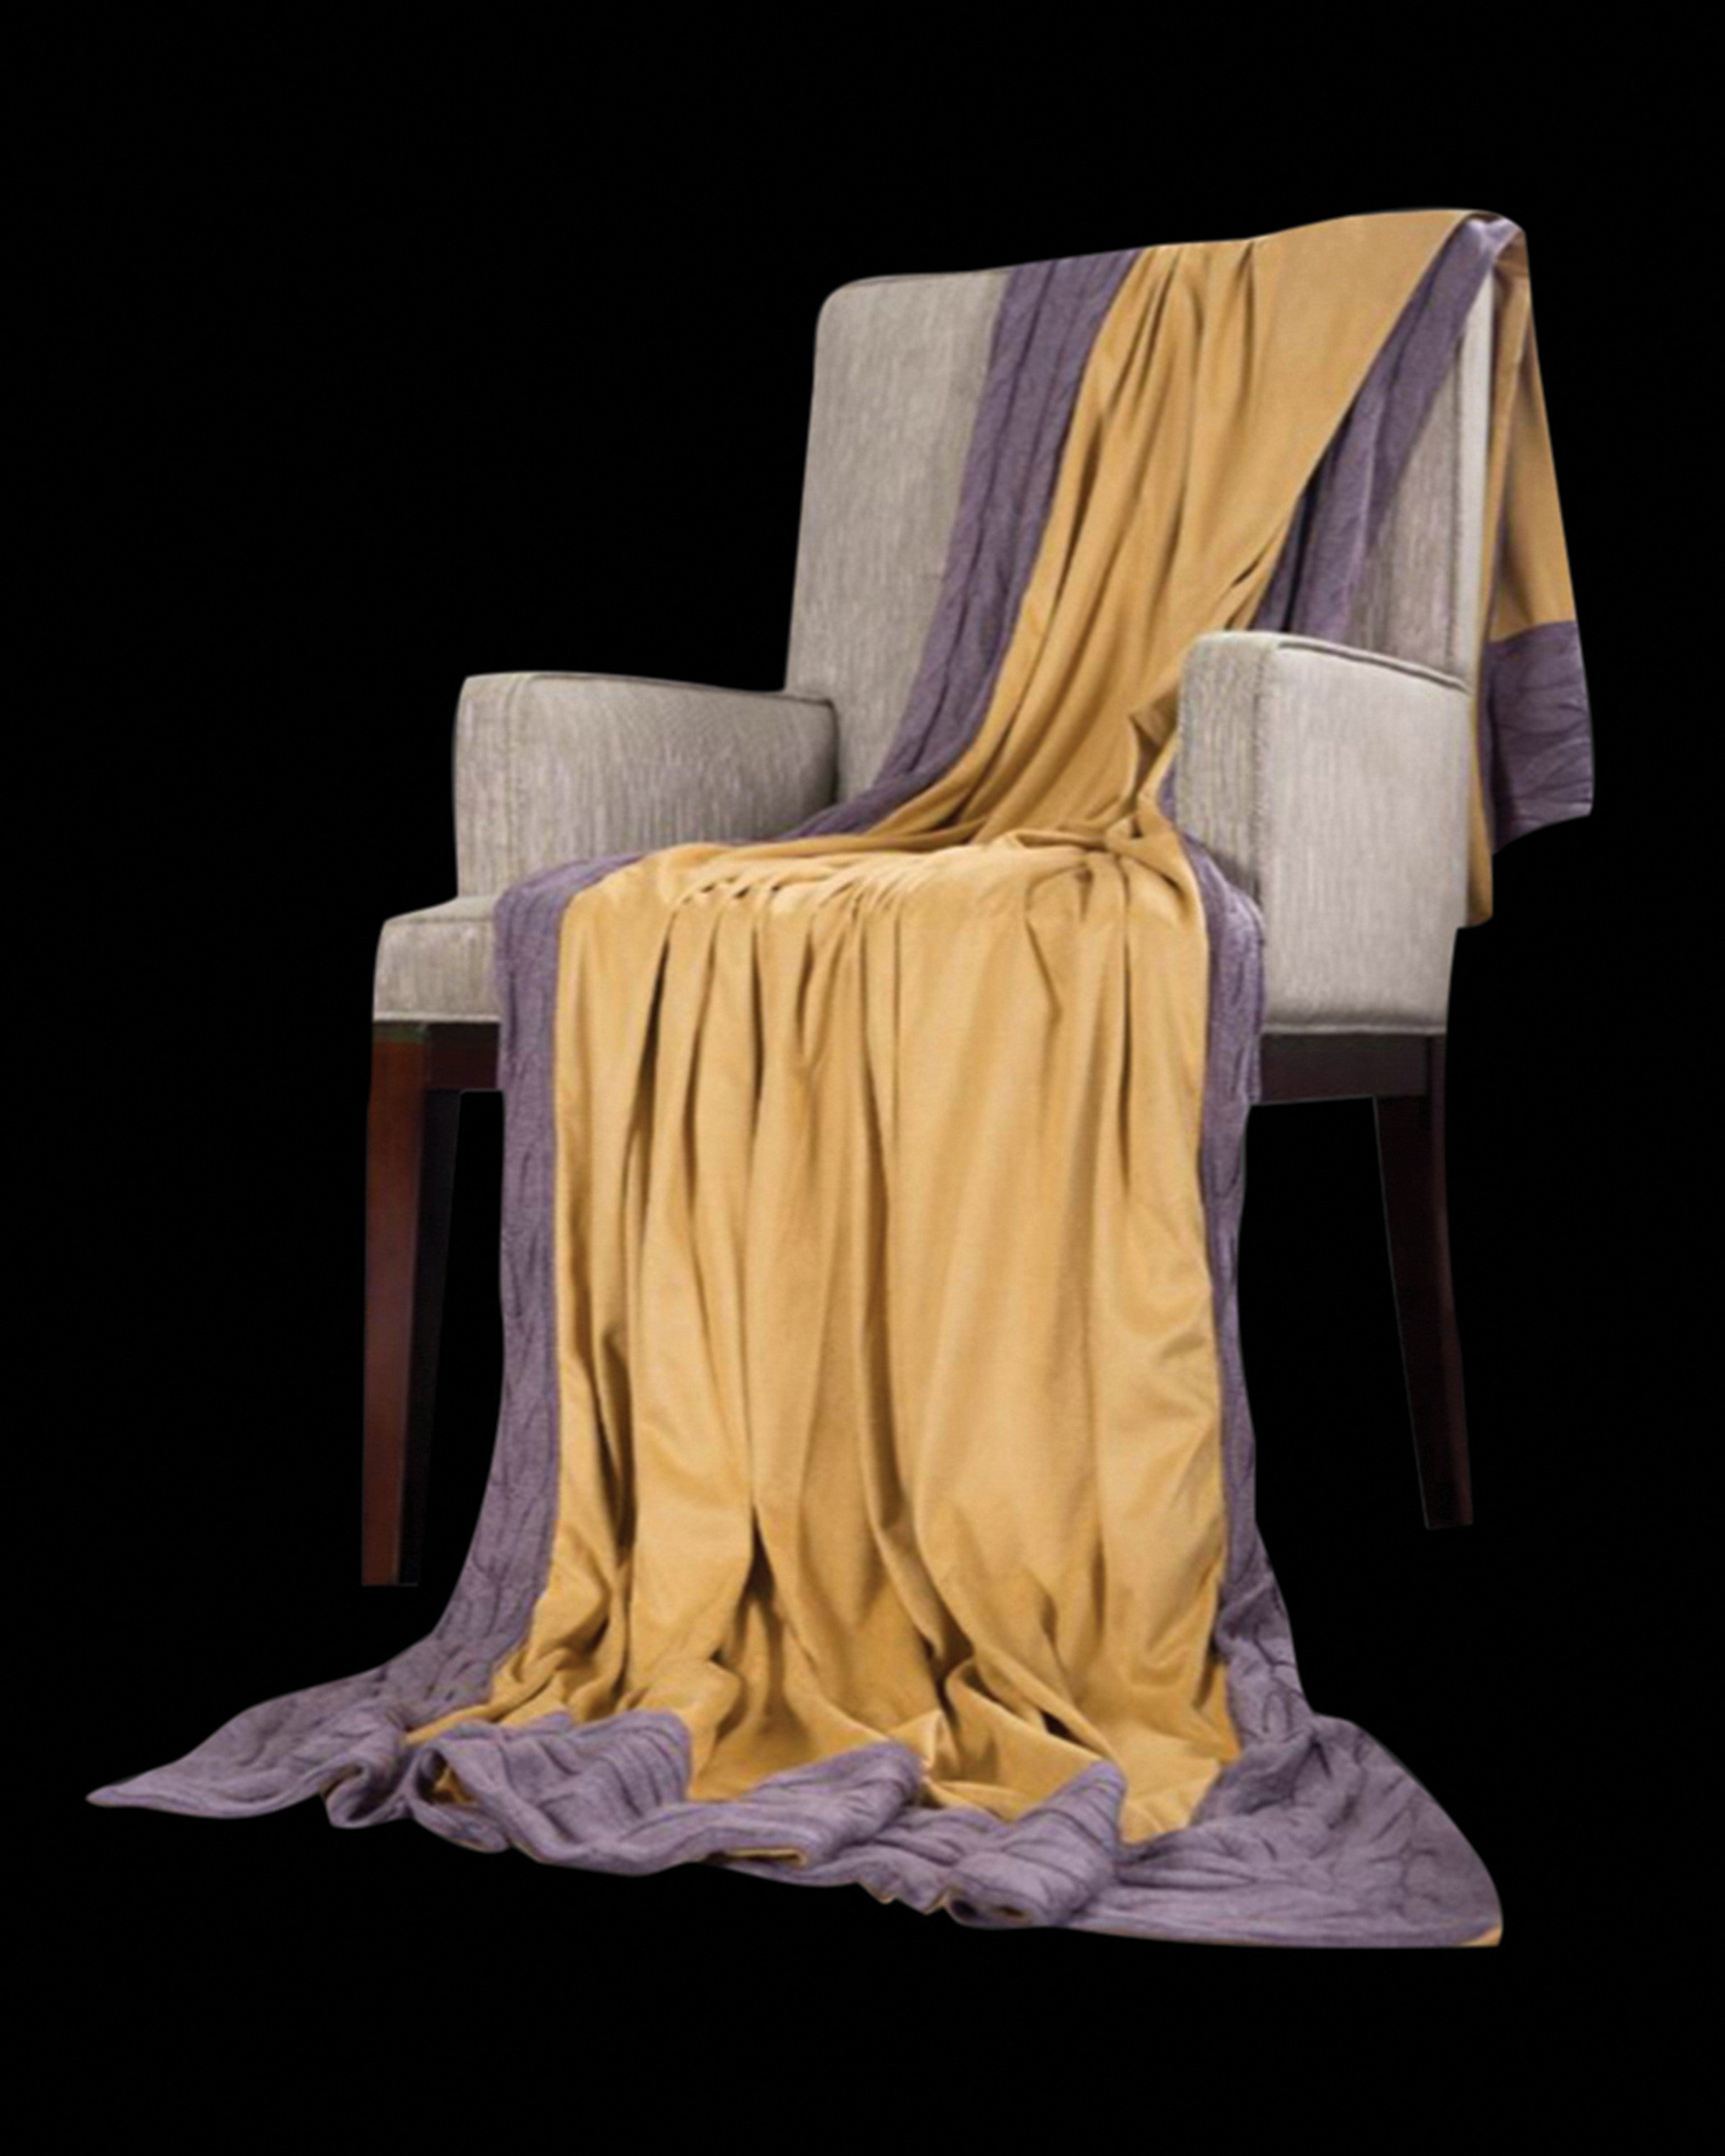 CRICKET LUXURY YELLOW AND GREY  THROWS AND BLANKETS - ANGIE HOMES ANGIE HOME